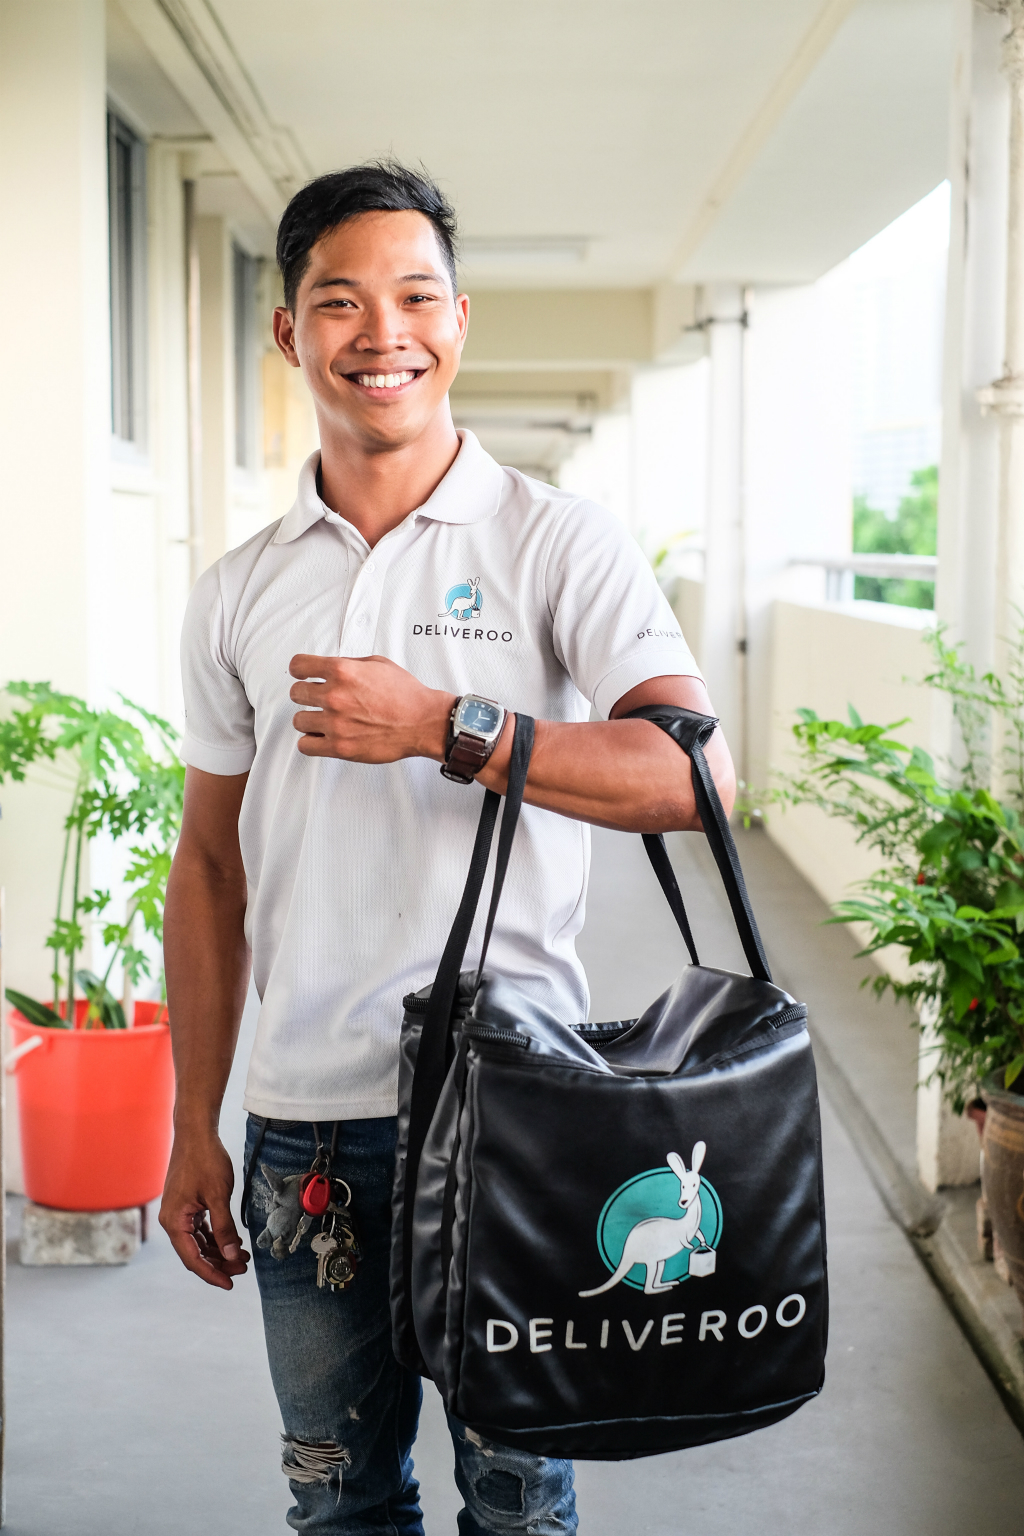 Deliveroo guy